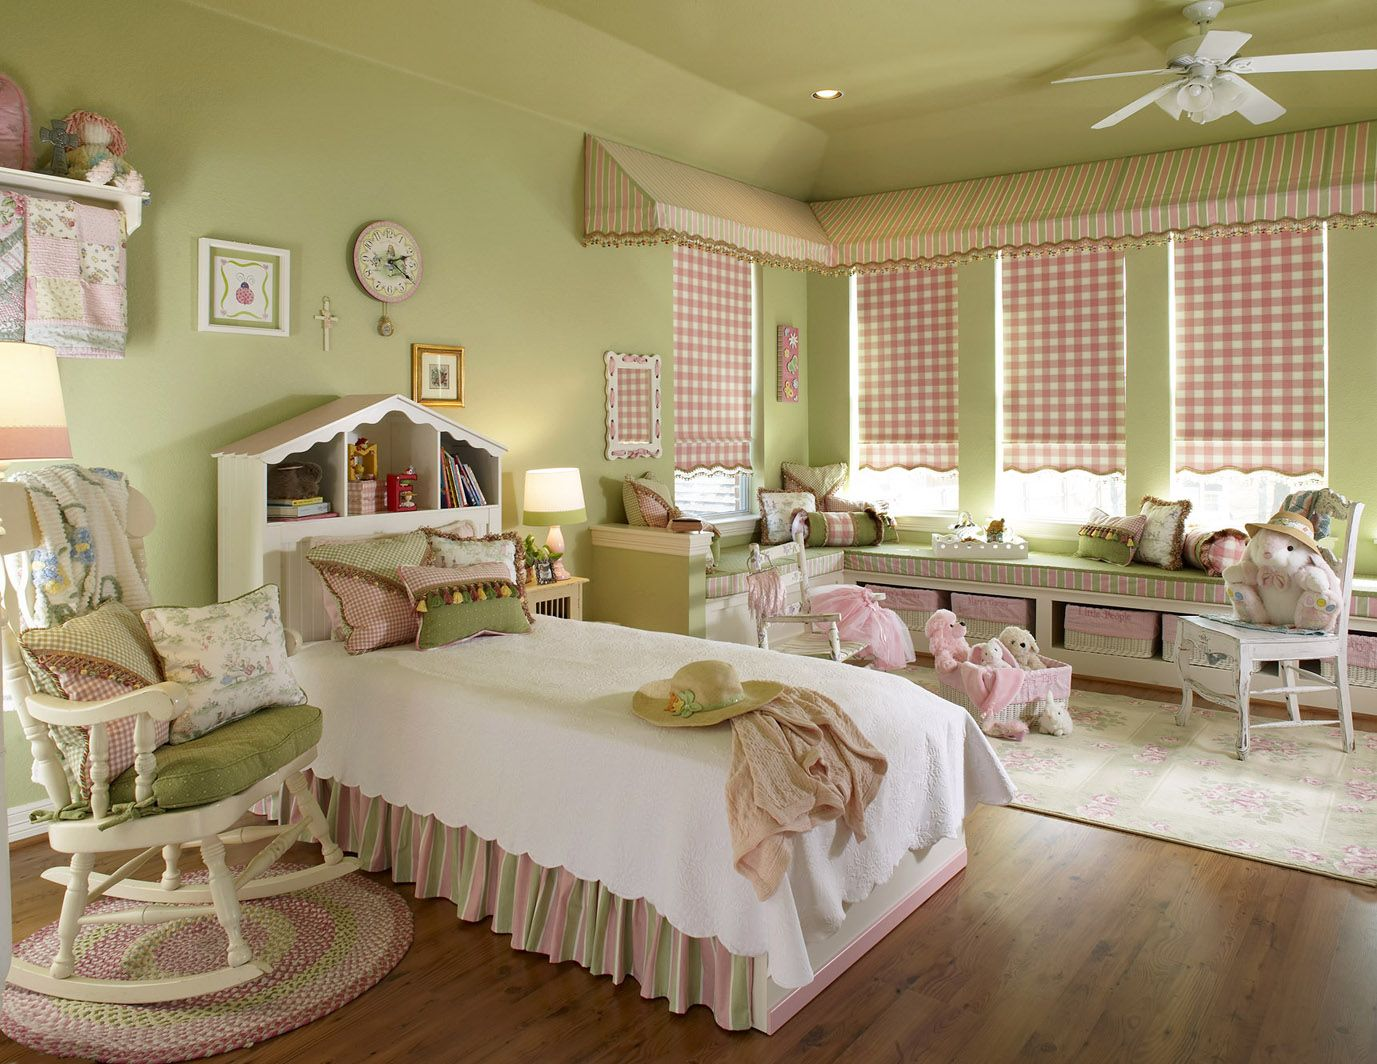 Cool Bedrooms In Pastel Green Color Sweet Retro Kids Bedroom With Great White Rocking Chair And Captivating Lshaped Bay Window Also Wooden